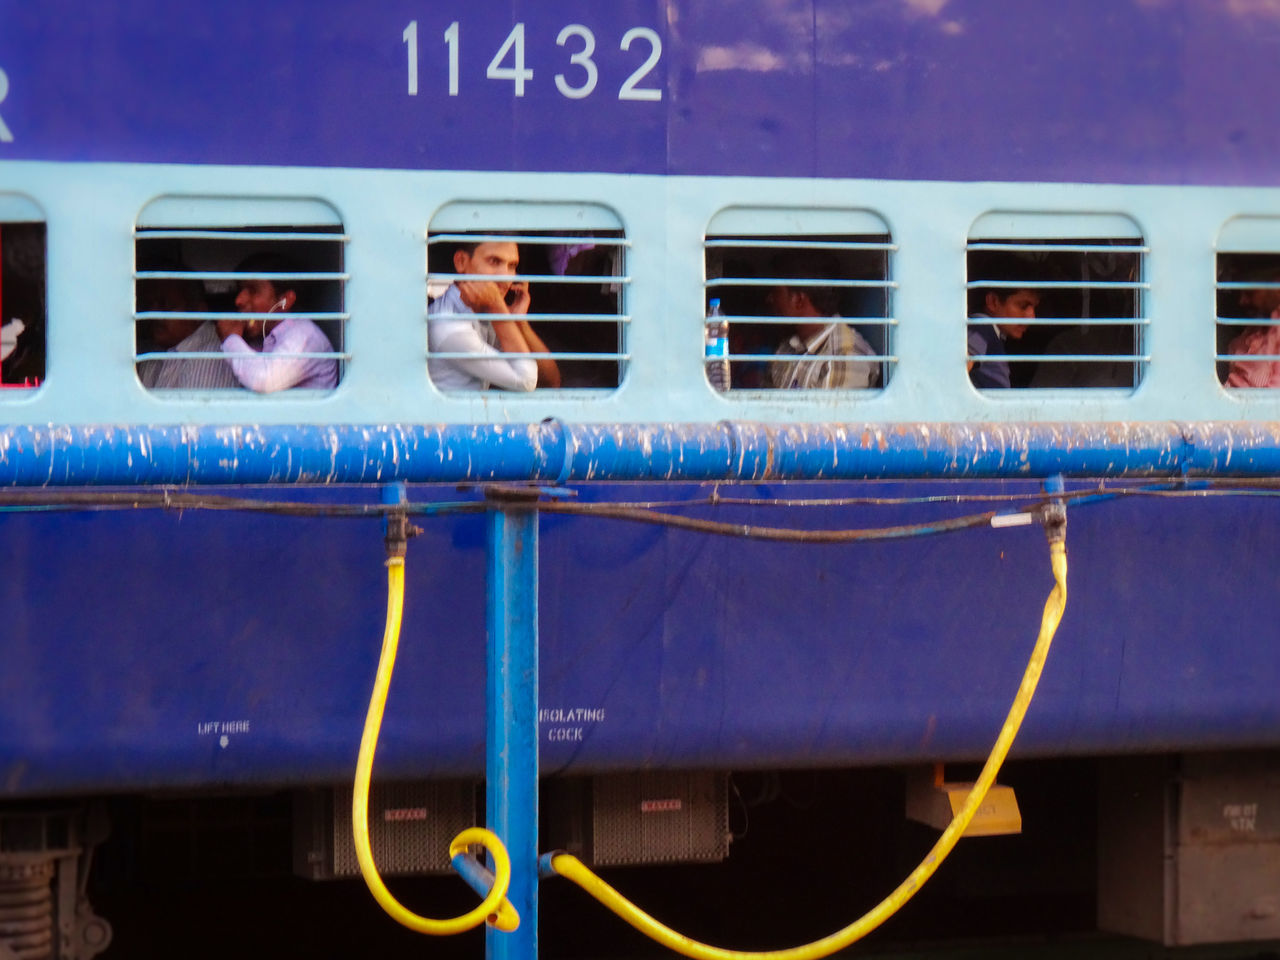 mode of transport, transportation, train - vehicle, public transportation, land vehicle, communication, blue, day, men, outdoors